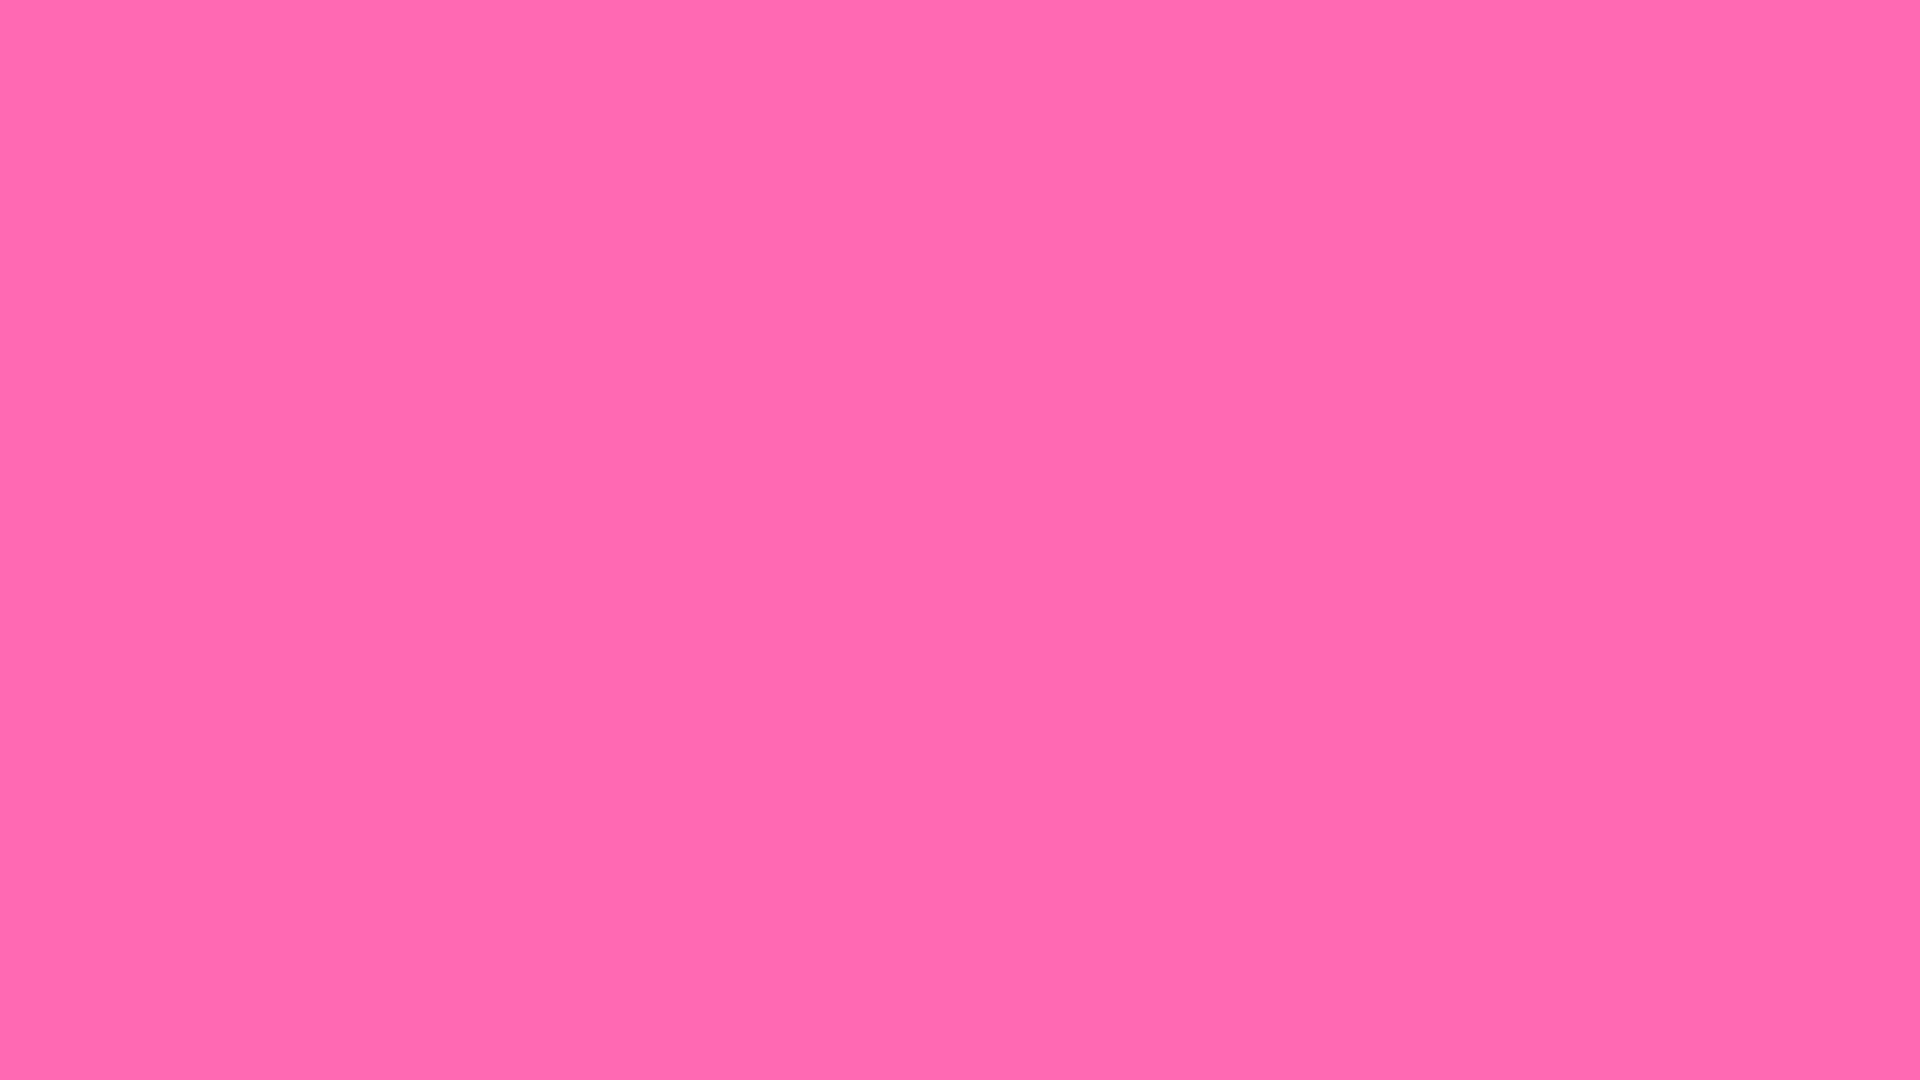 1920x1080 Hot Pink Solid Color Background 1920x1080